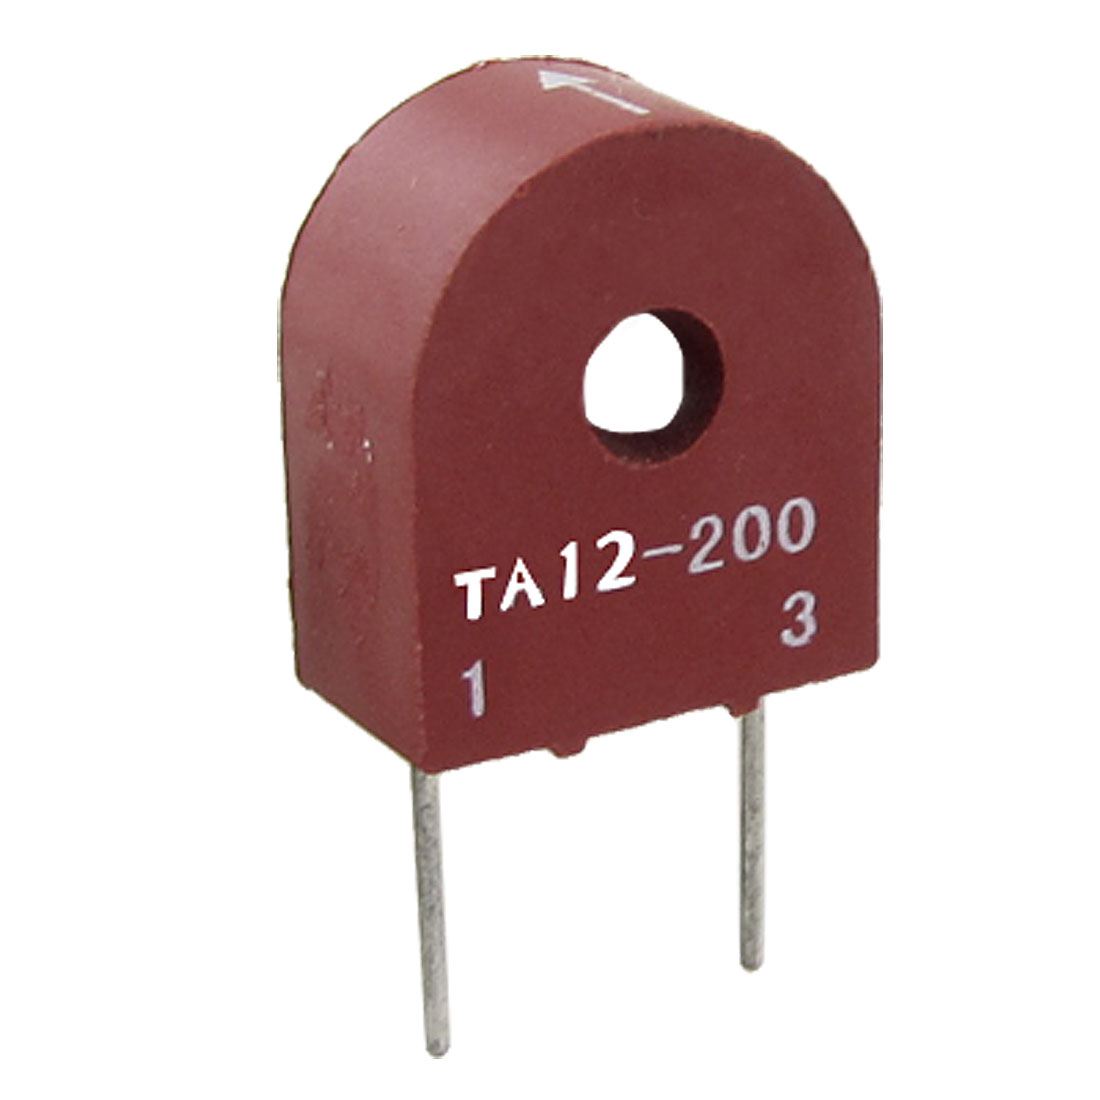 Epoxy Resin Embedding 0-5A Input AC Current Transformer TA12-200